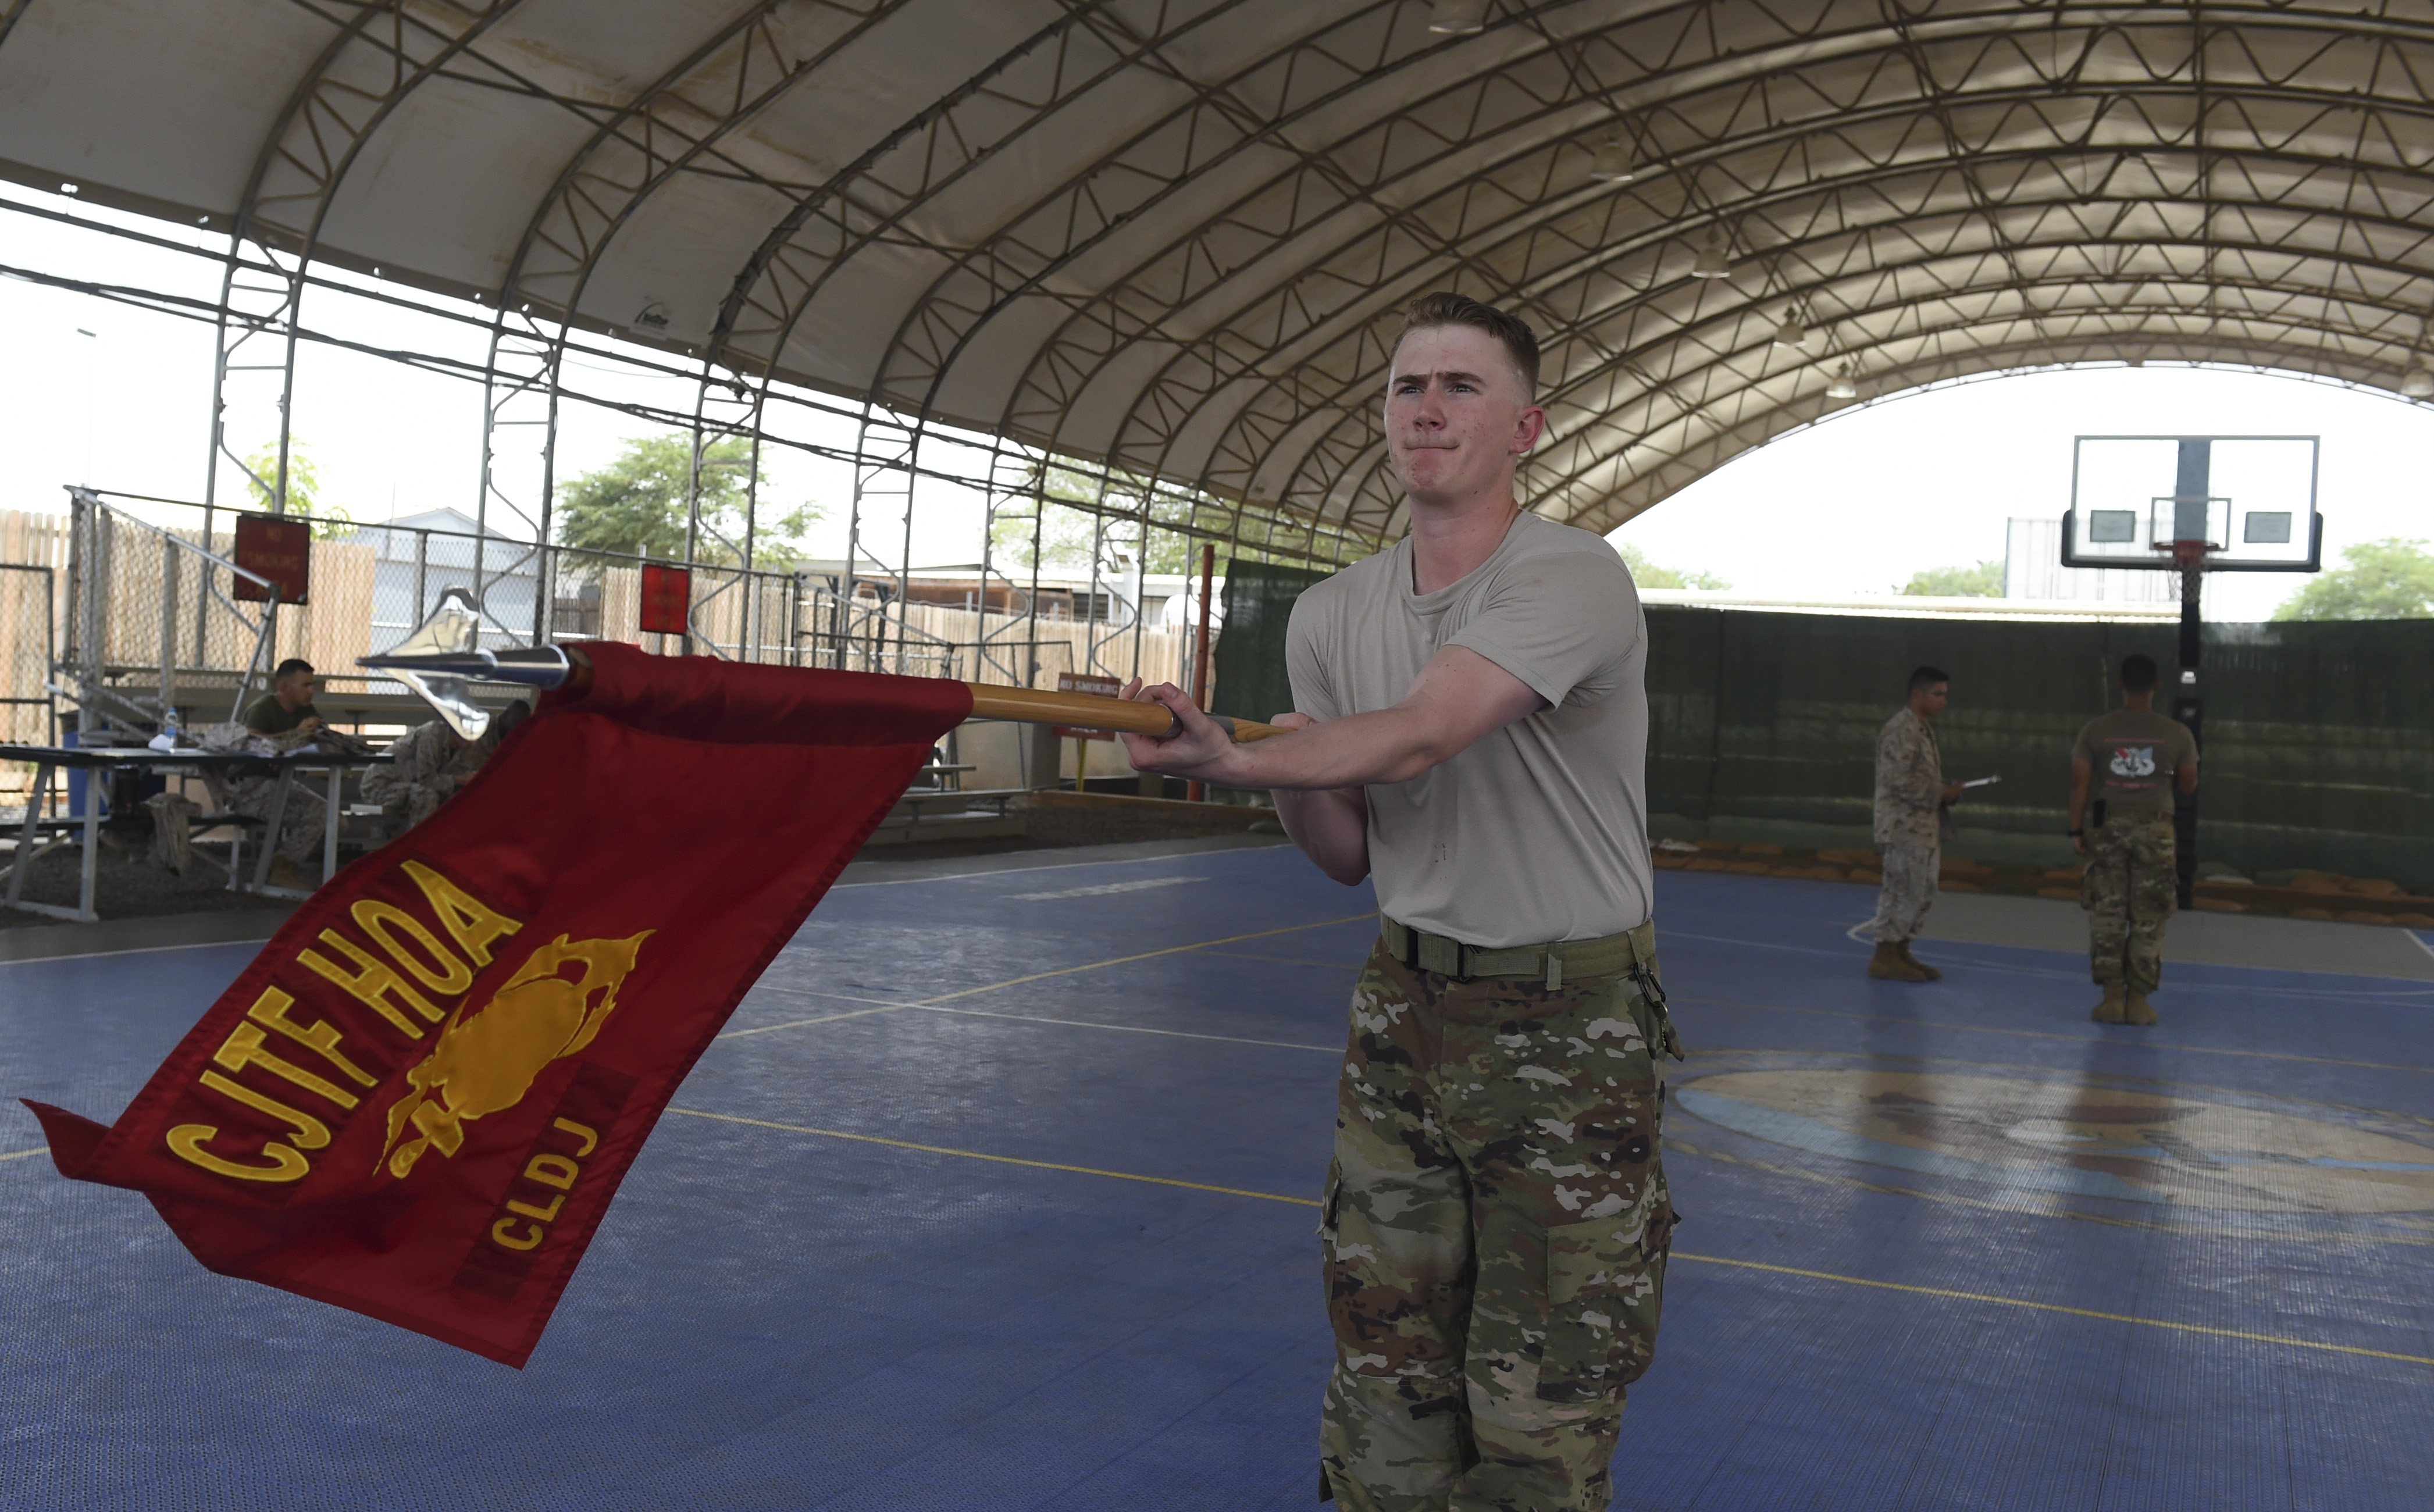 U.S. Air Force Senior Airman Christian Davis, assigned to Combined Joint Task Force-Horn of Africa, prepares to present arms with a guidon during the Corporal's Course at Camp Lemonnier, Djibouti, May 24, 2017. The course is a requirement for Marines in the enlisted grade of E-4, but here, all U.S. service members in the ranks of corporal, specialist, senior airman or petty officer third class were allowed to participate. (U.S. Air Force photo by Staff Sgt. Eboni Prince)